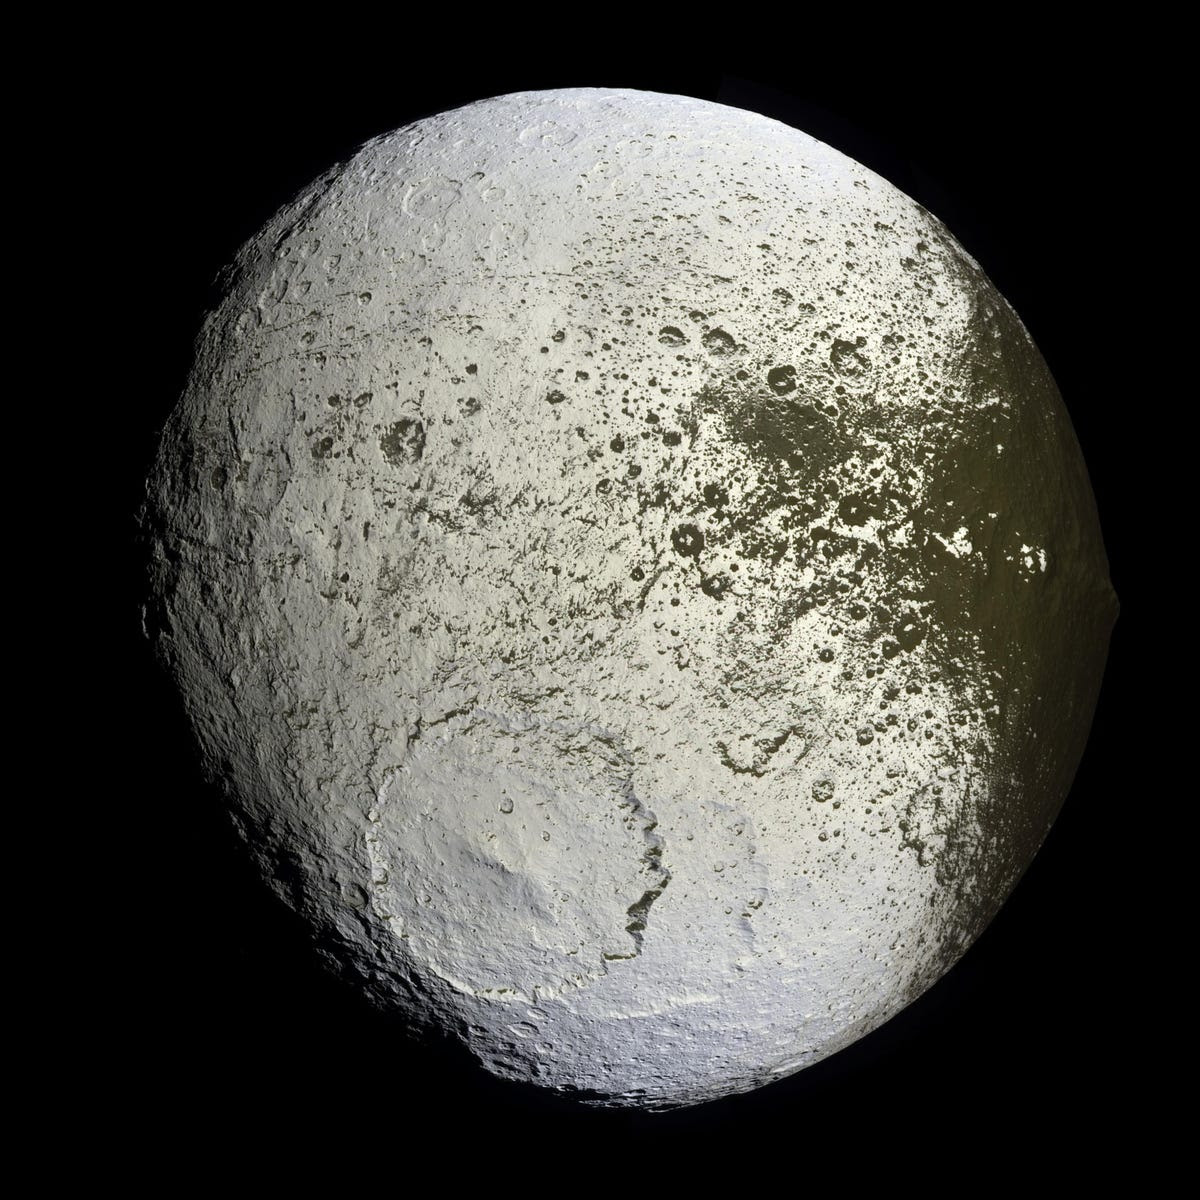 Cassini inventoried Saturn's other weird moons, too, including Iapetus...